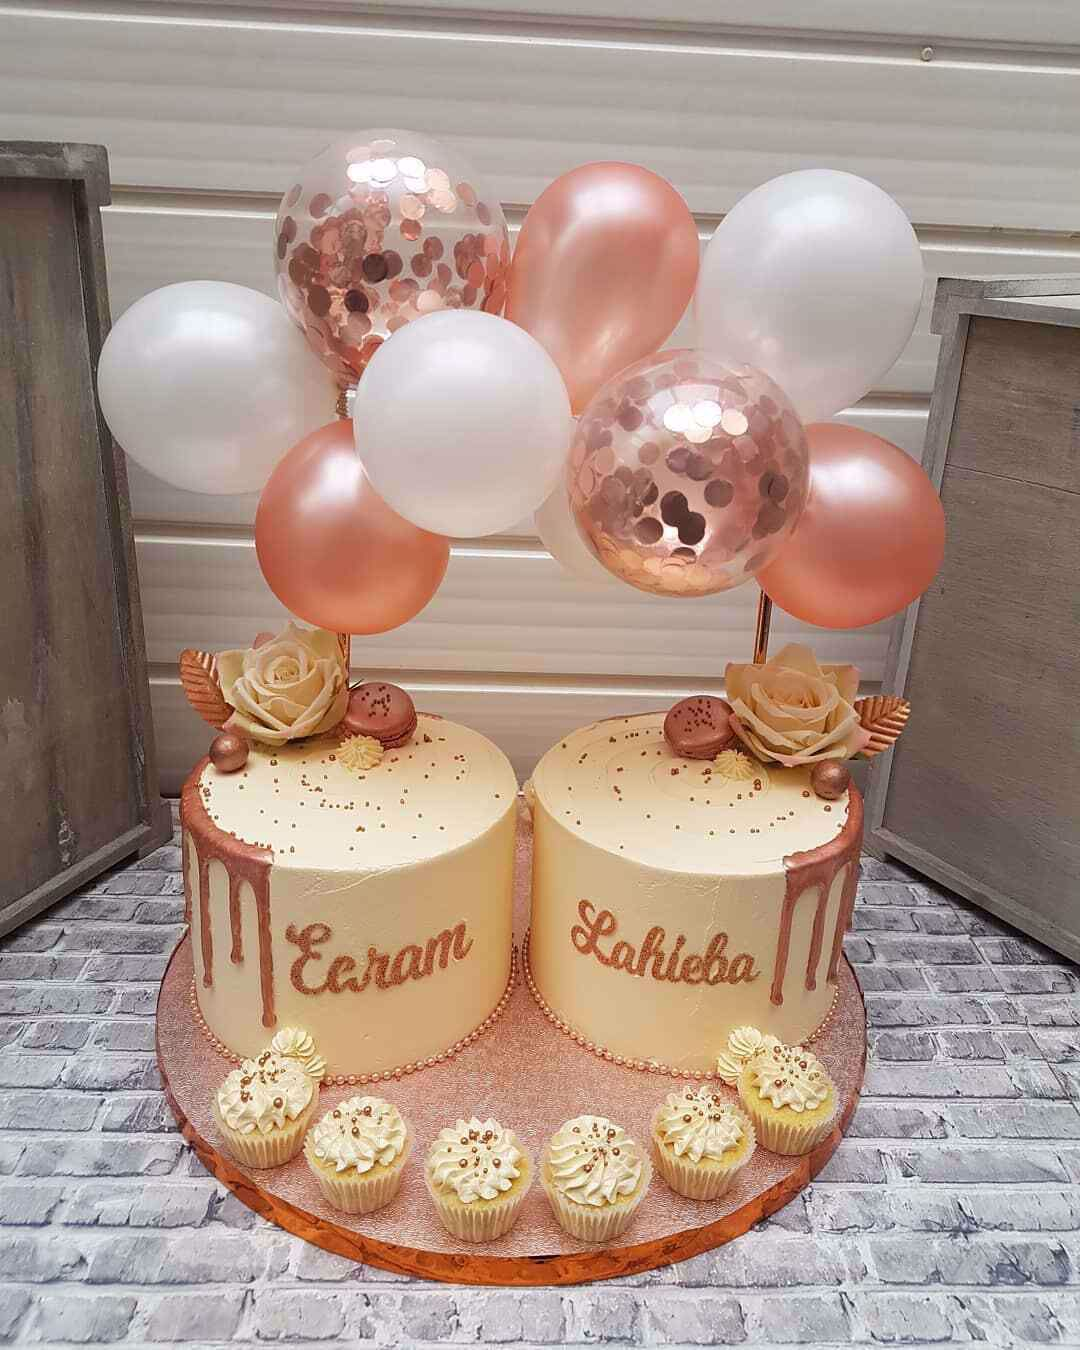 Awe Inspiring Outofmybubble Balloon Cake Topper Mini Garland White Rose Gold Personalised Birthday Cards Paralily Jamesorg